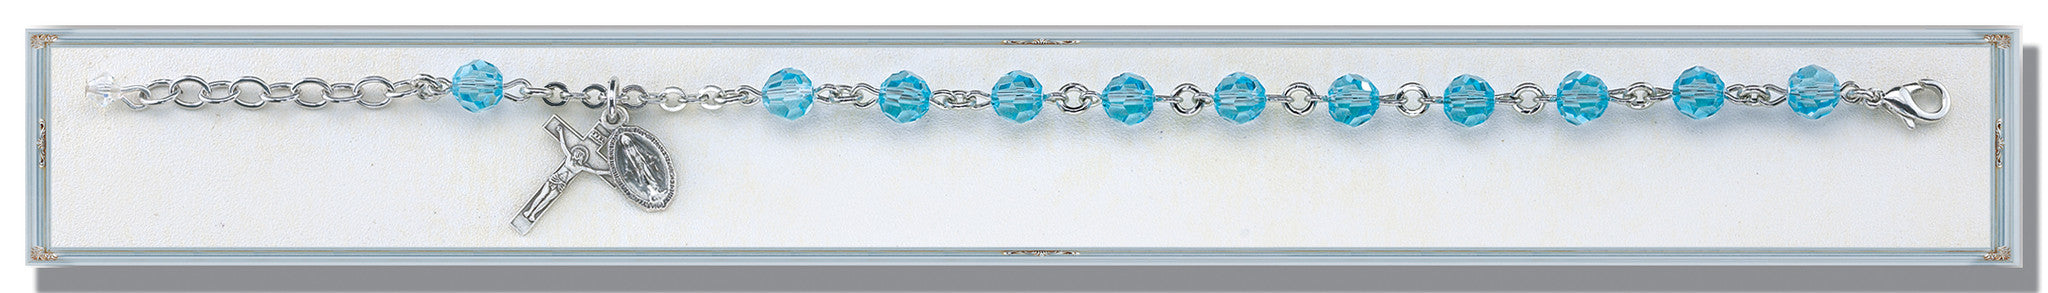 Aqua Round Faceted Swarovski Crystal Sterling Bracelet